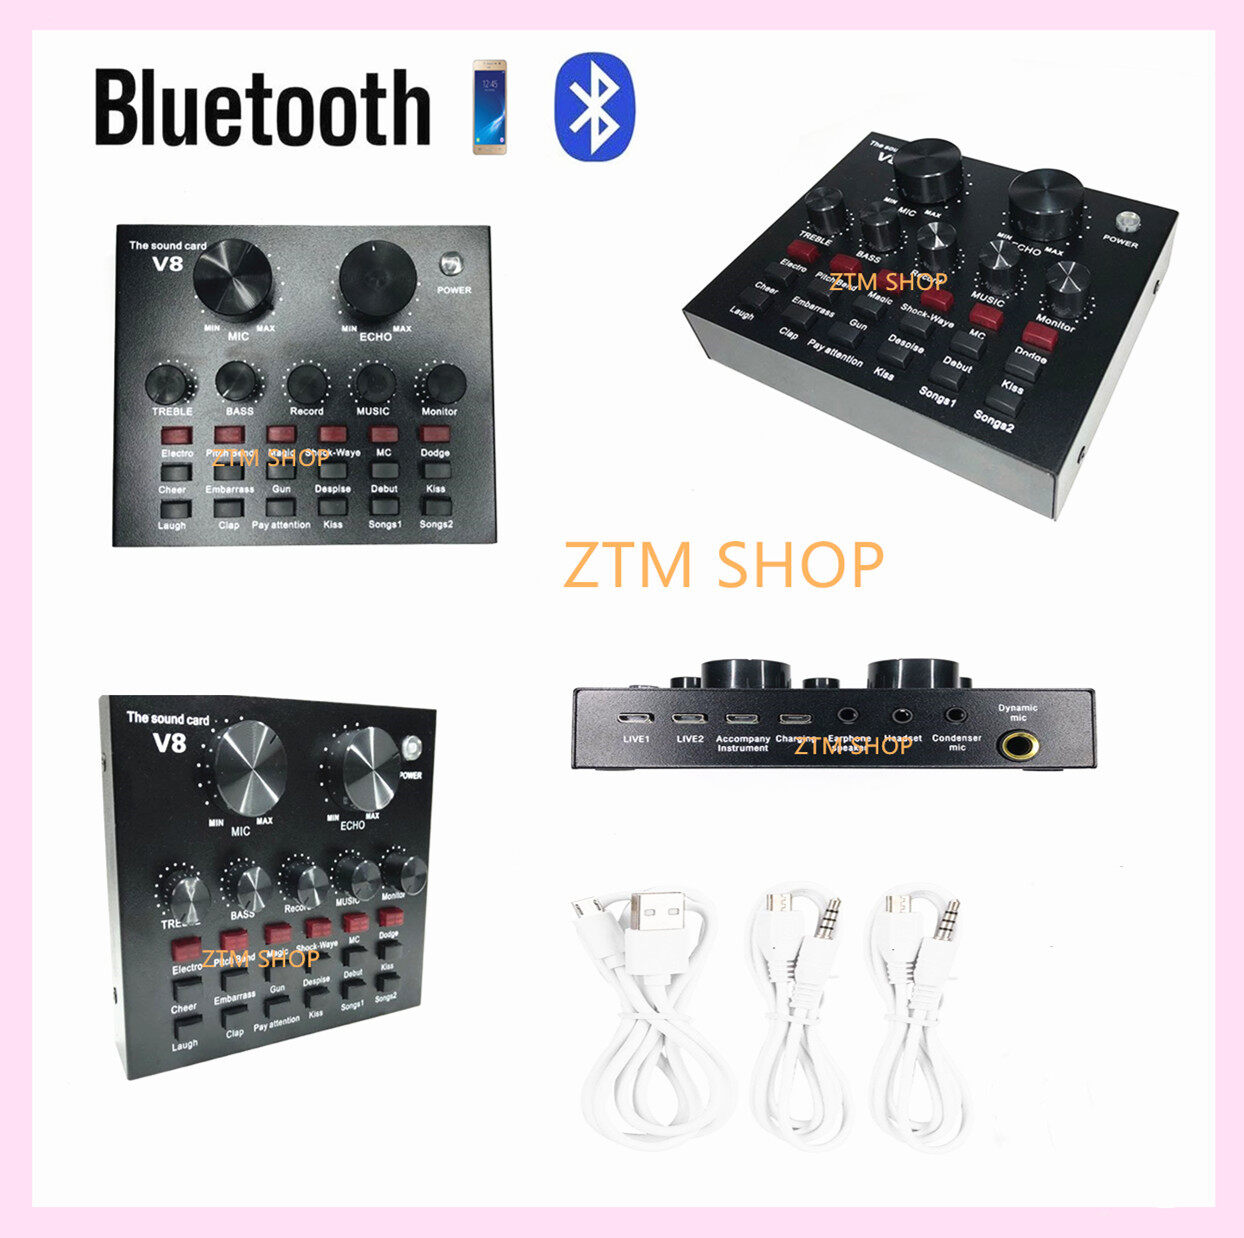 V8 Audio Live Sound Card For Phone Computer Usb Headset Microphone Webcast-(bluetooth).